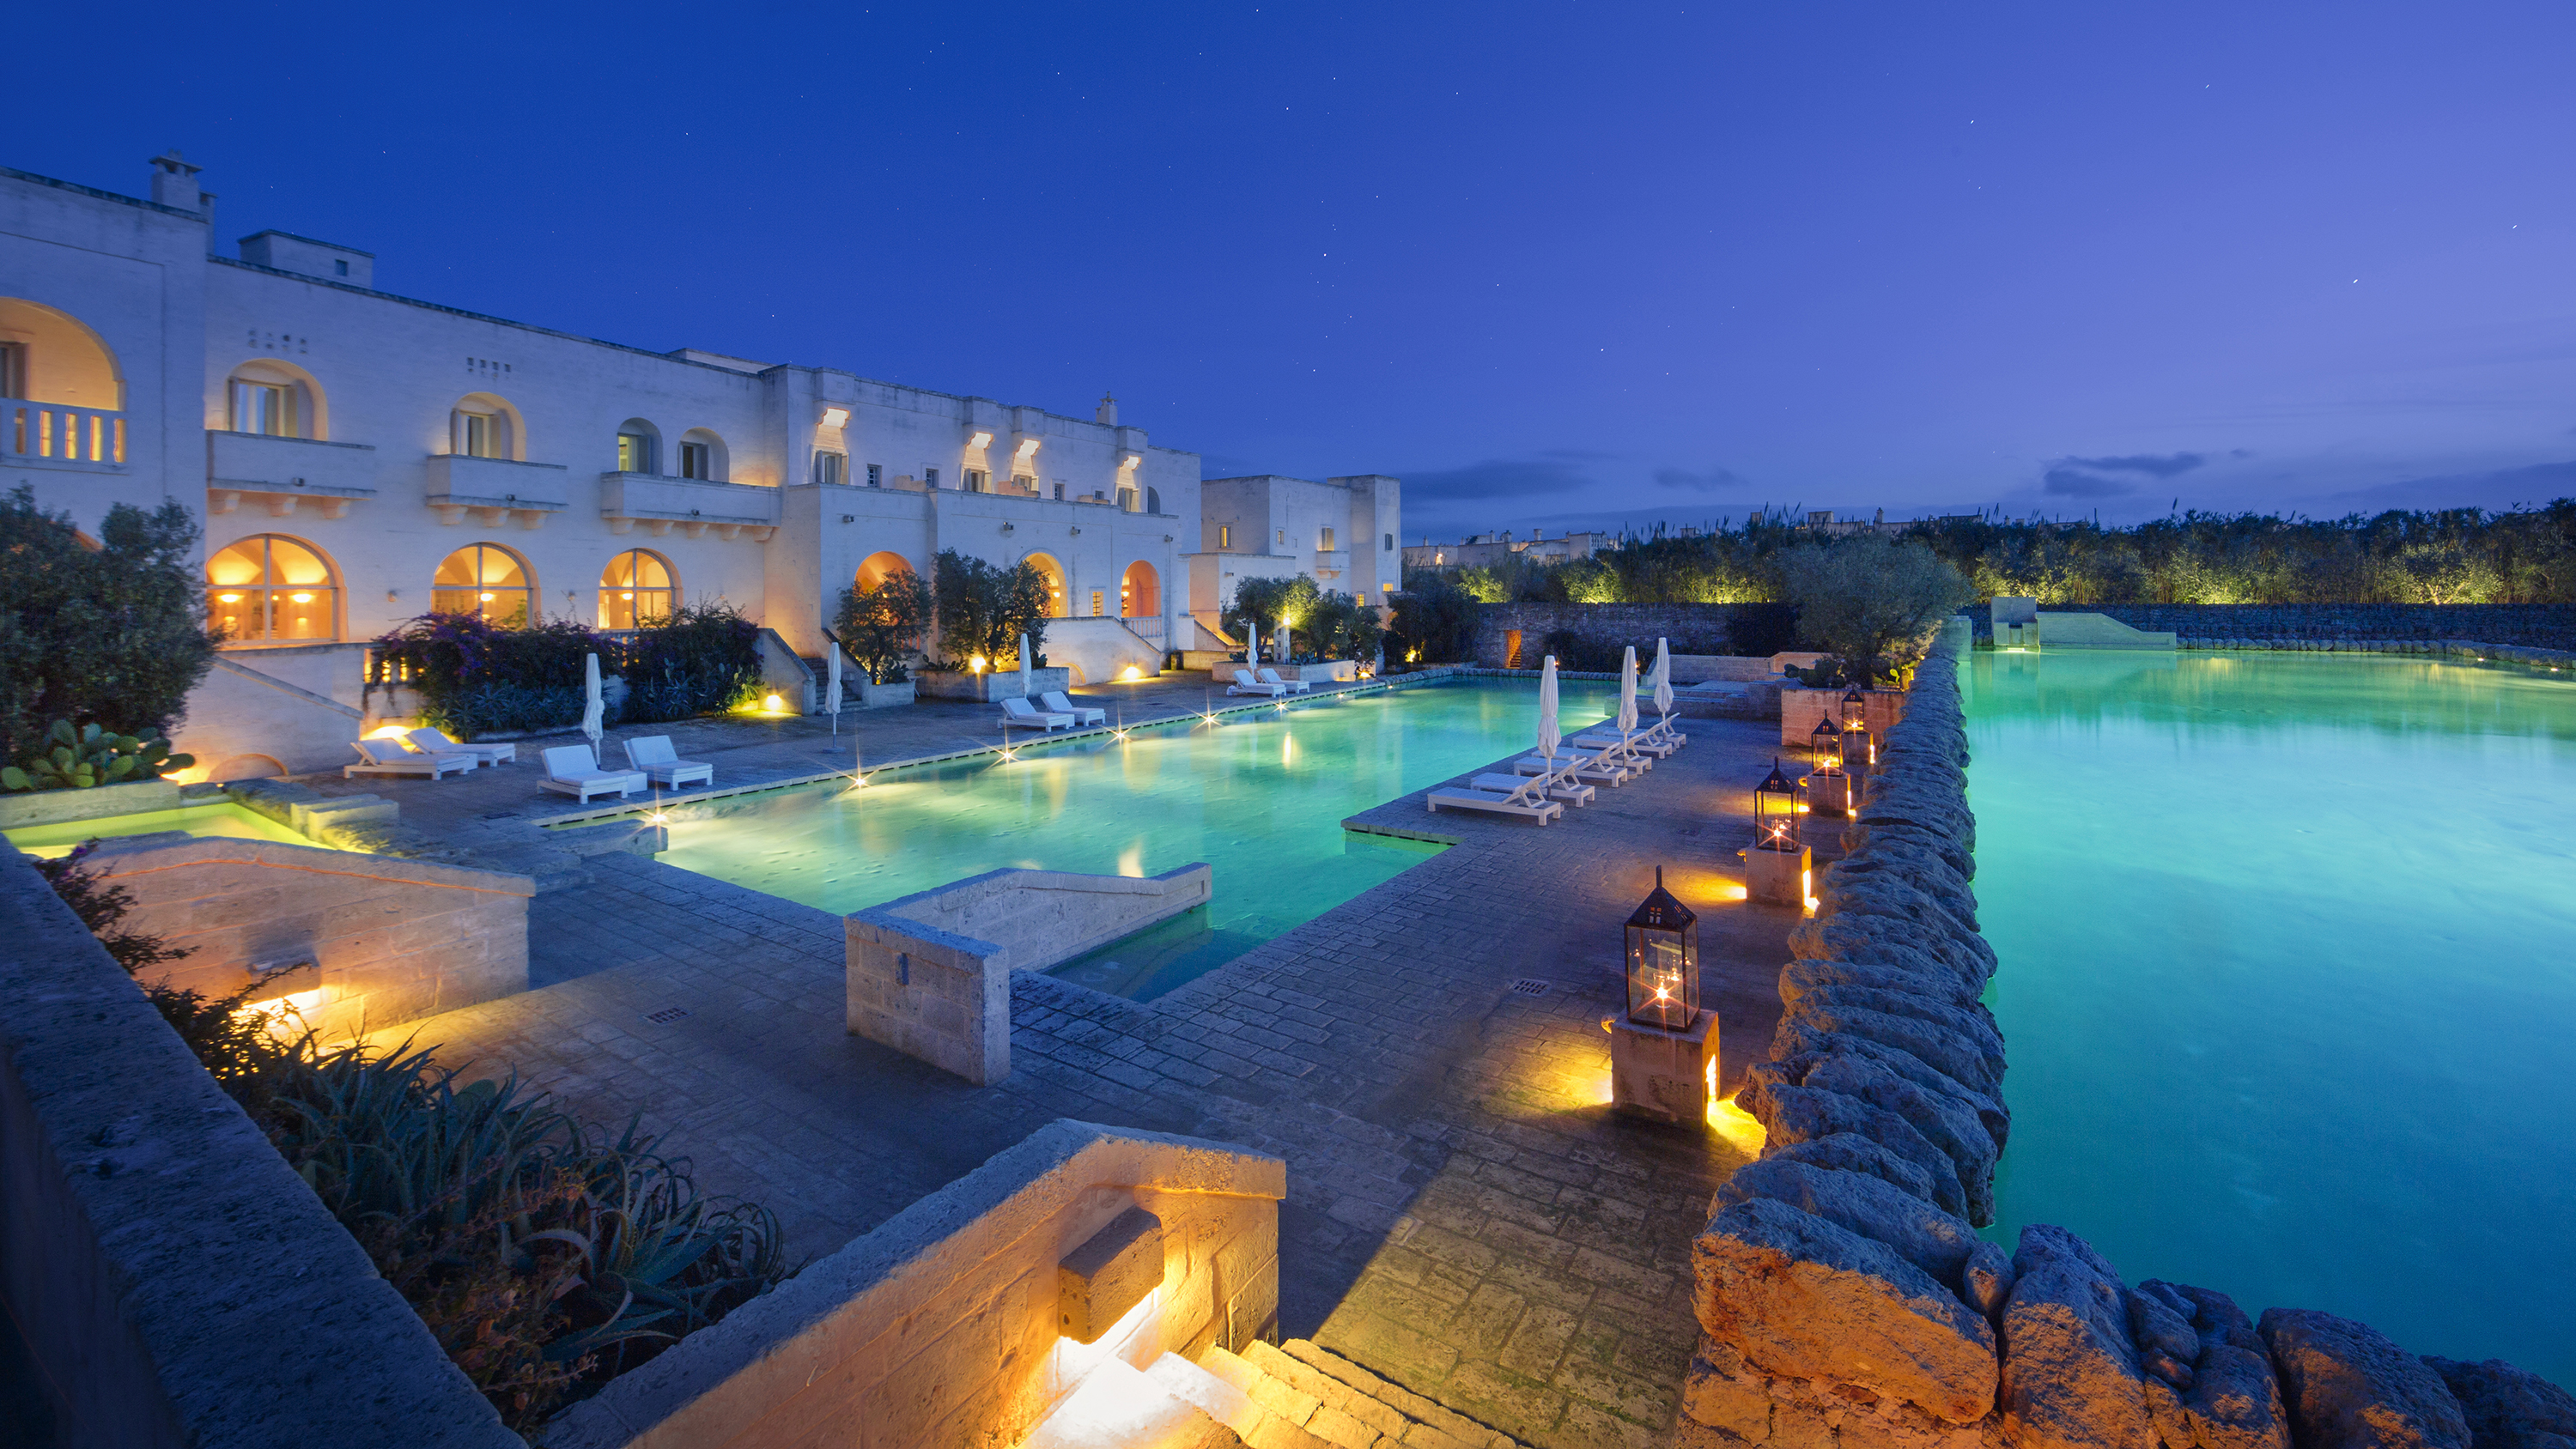 10 most beautiful hotels in Italy   CNN Travel